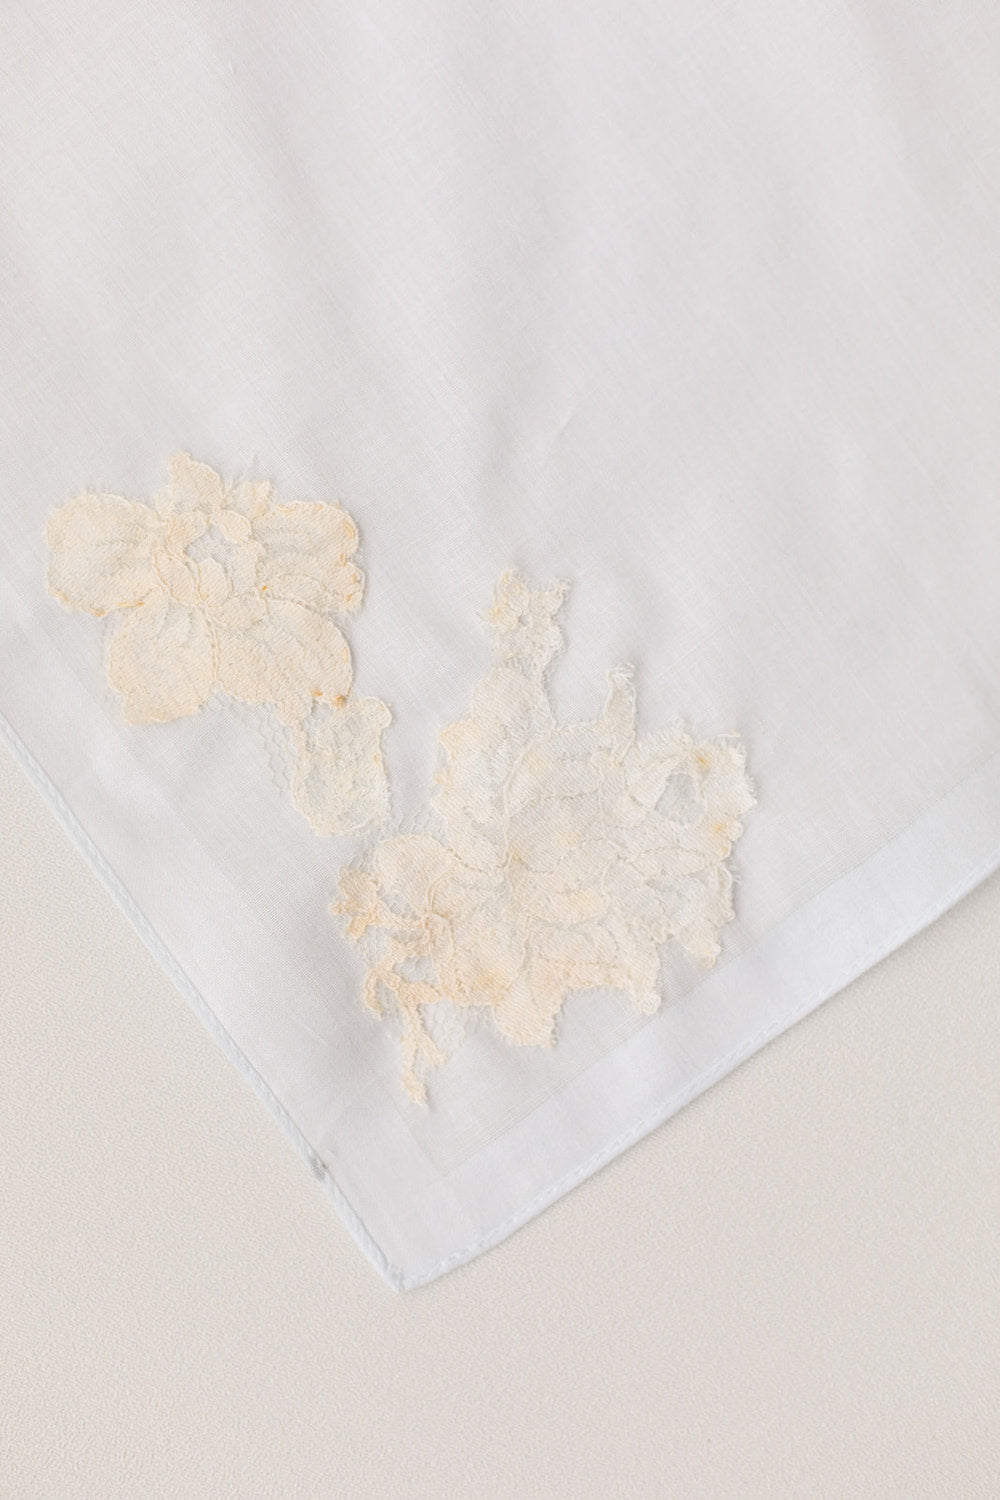 hankie from bride's mom's wedding dress